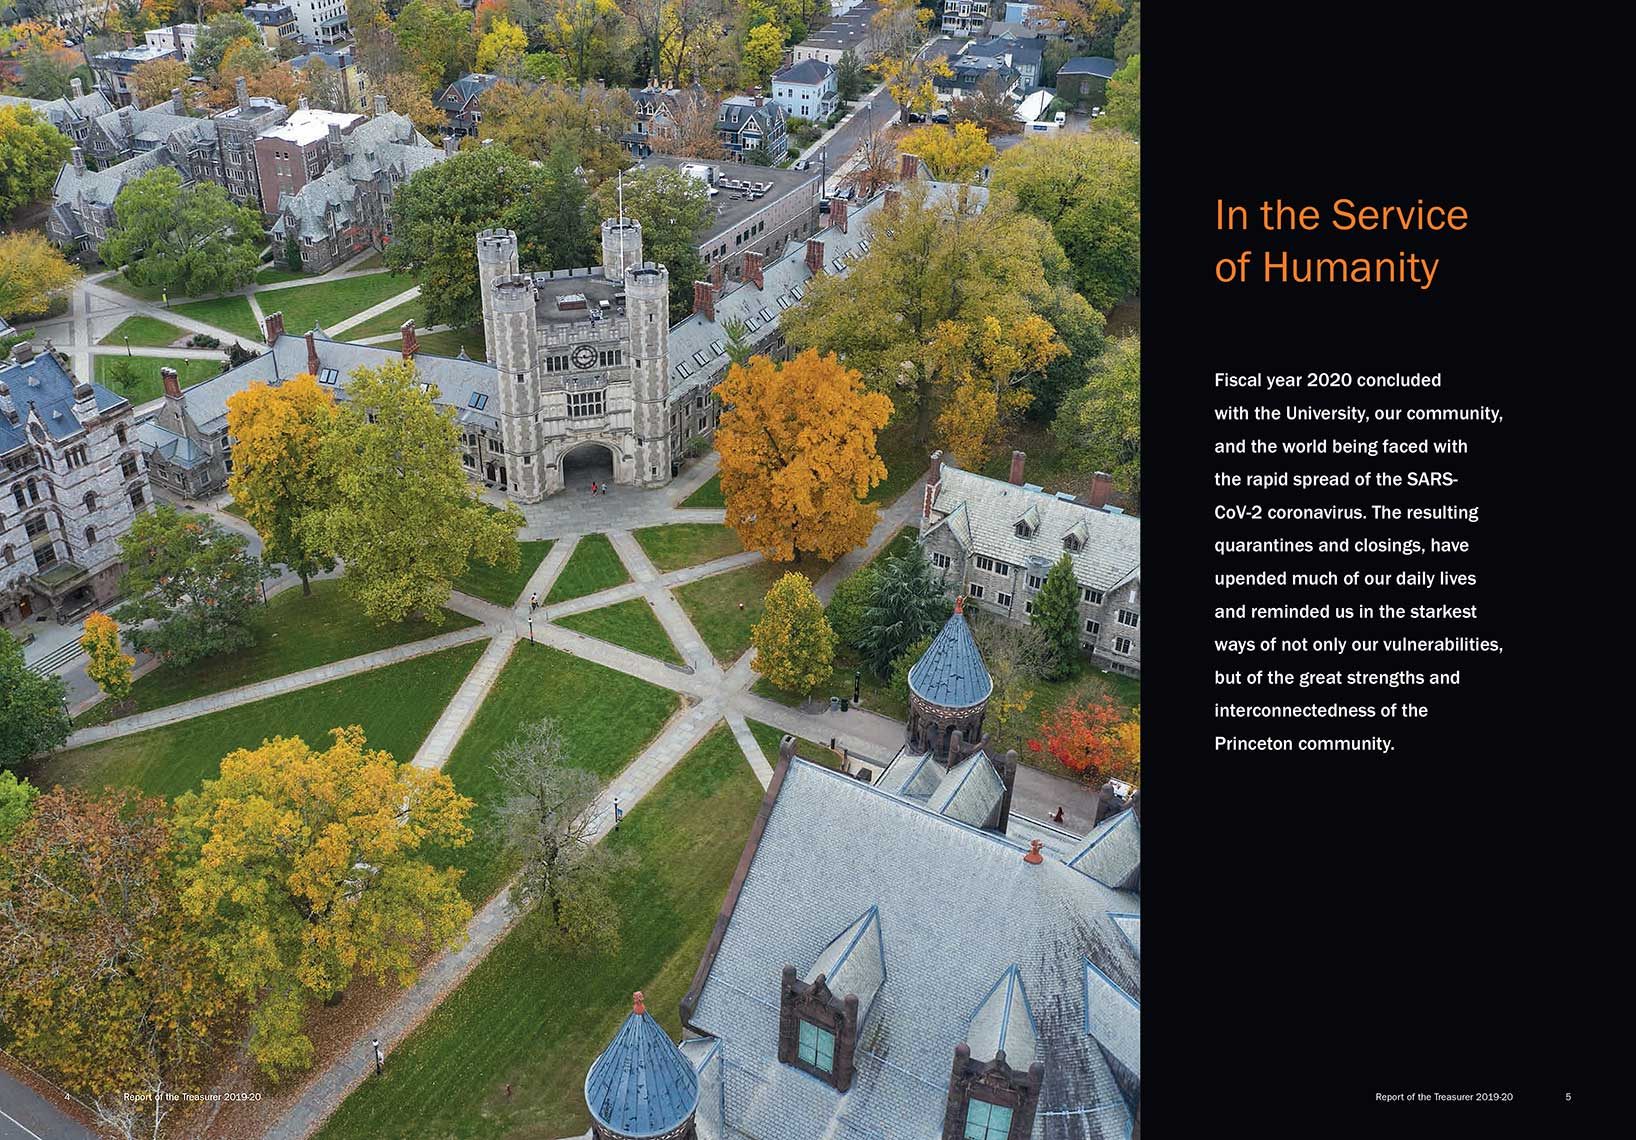 In the Service of Humanity, Report of the Treasurer 2019-20 Princeton University